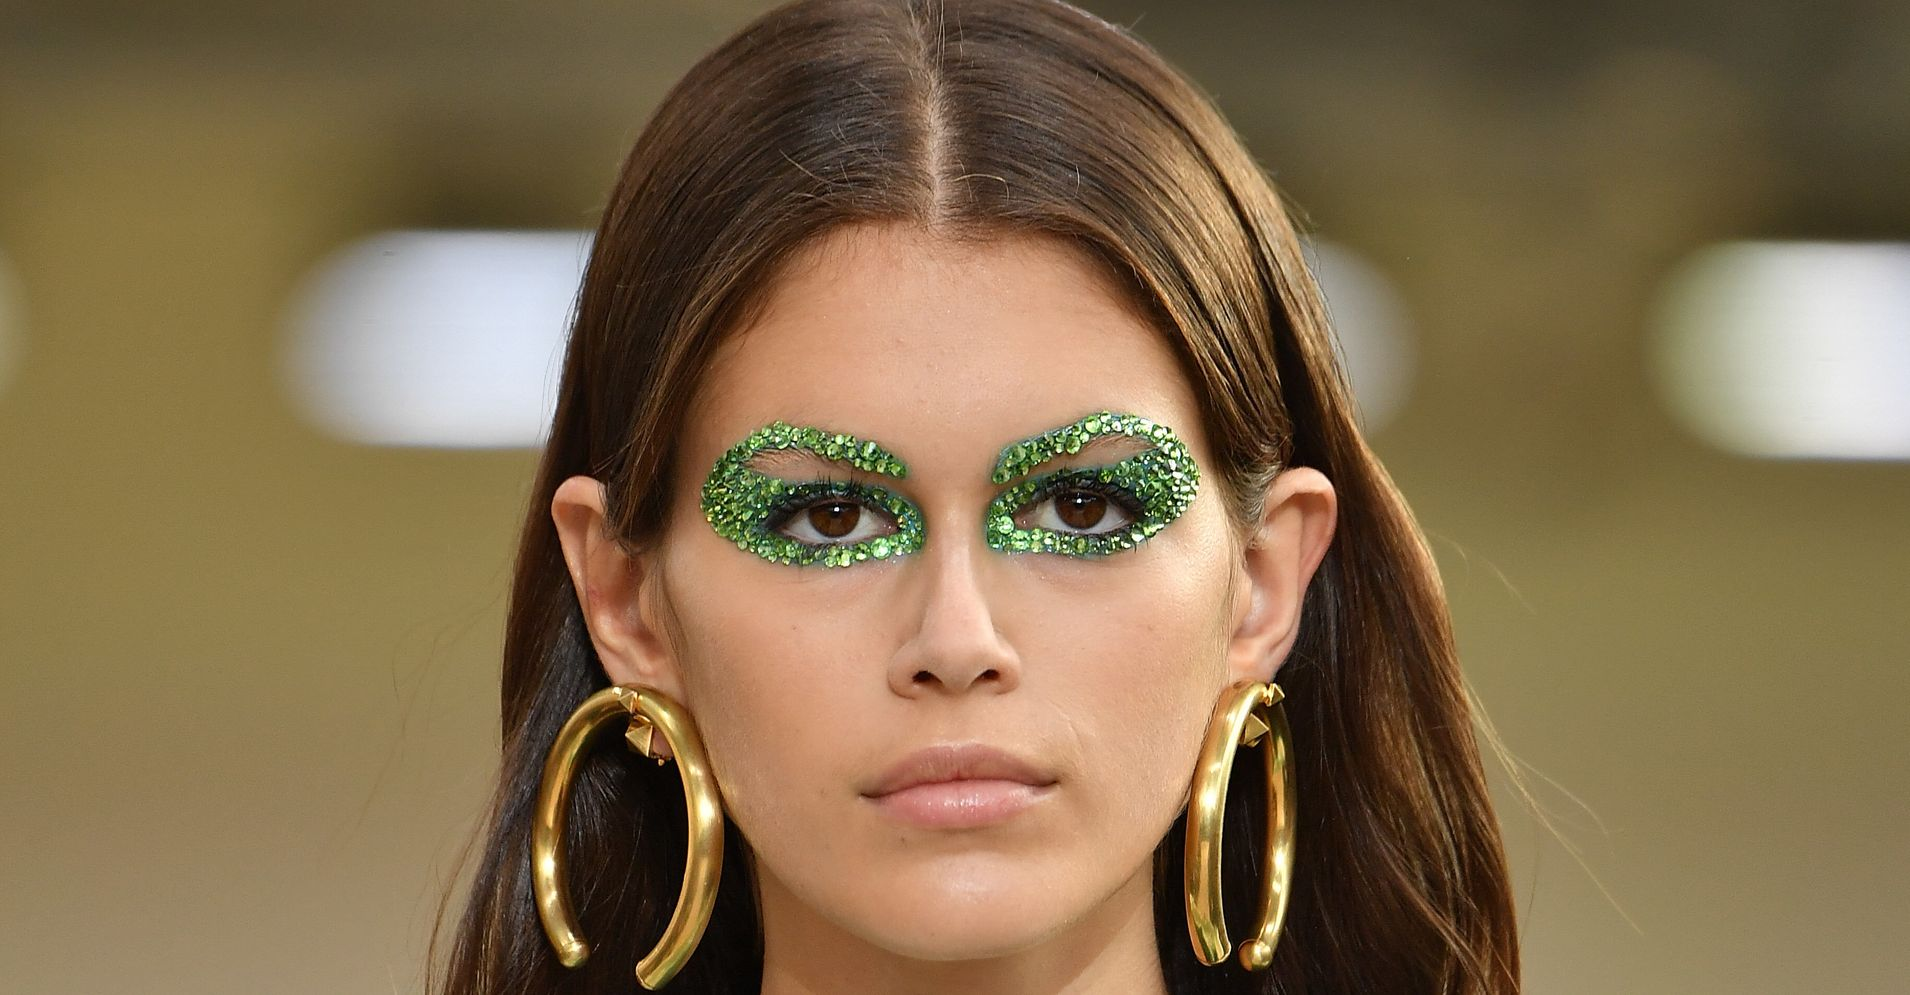 How To Wear Glitter Makeup, According To Pro Makeup Artists | HuffPost Life